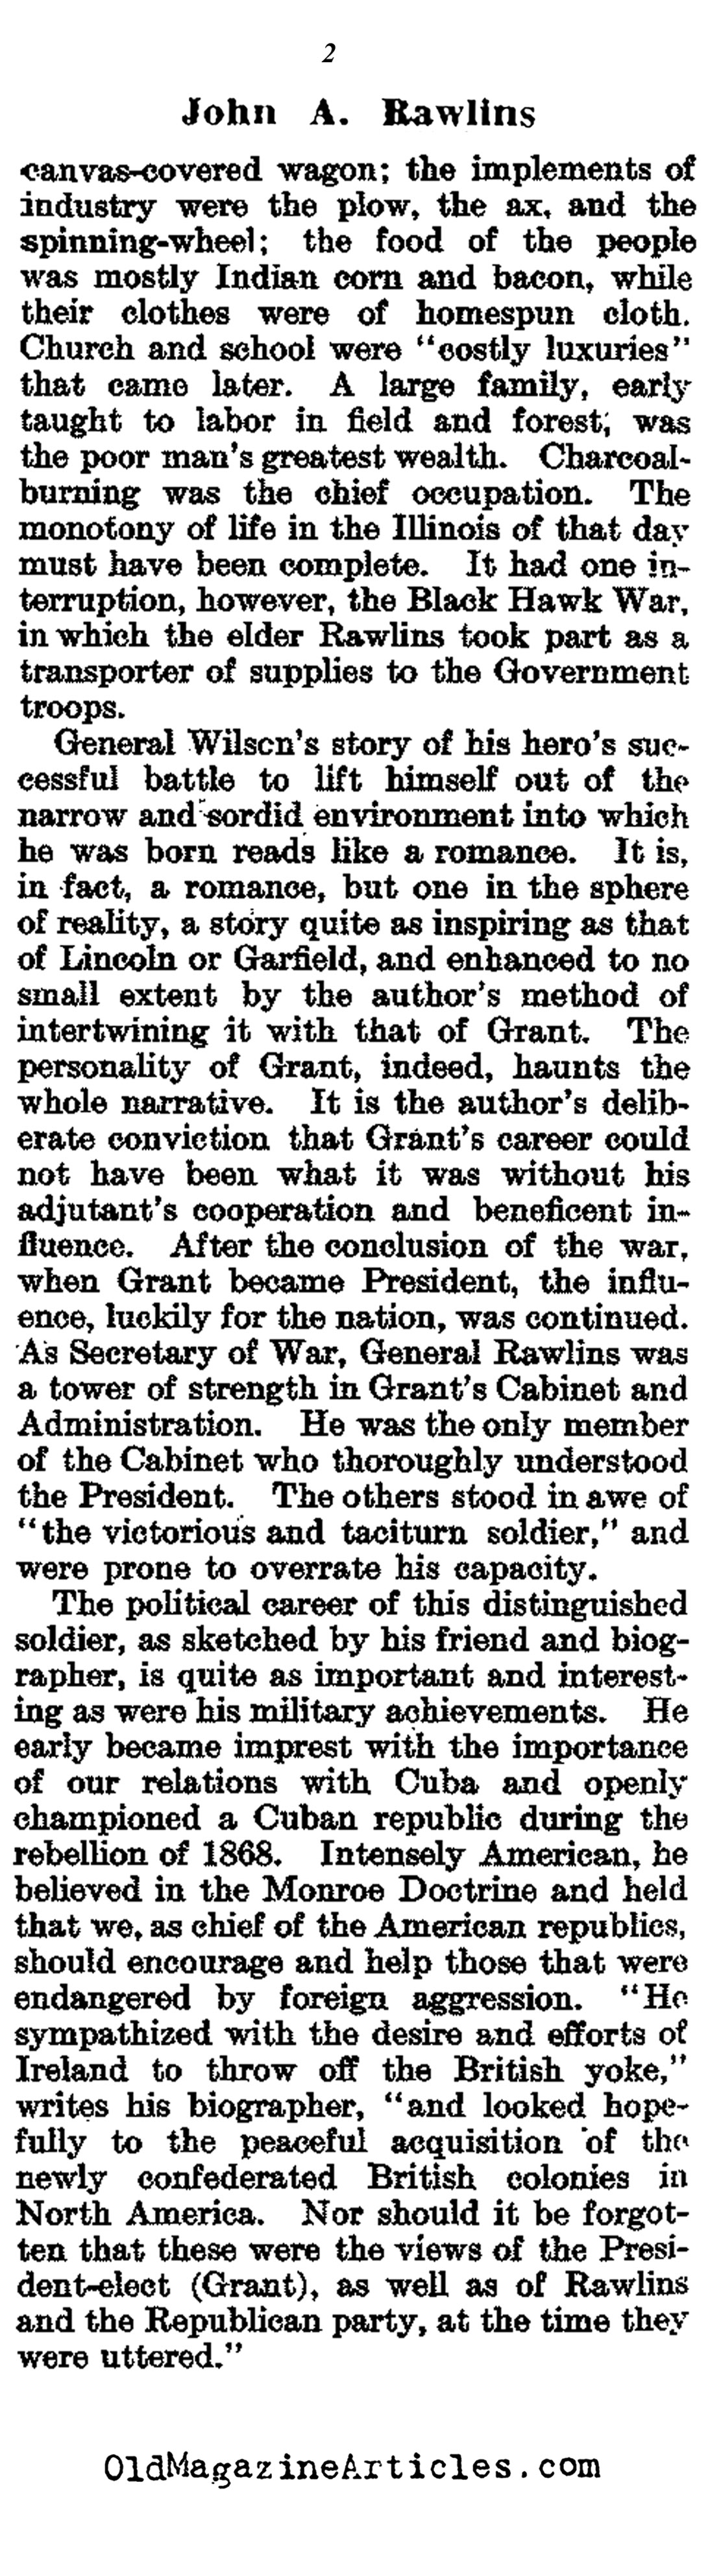 General John Rawlins: General Grant's Chief of Staff   (The Literary Digest, 1917)